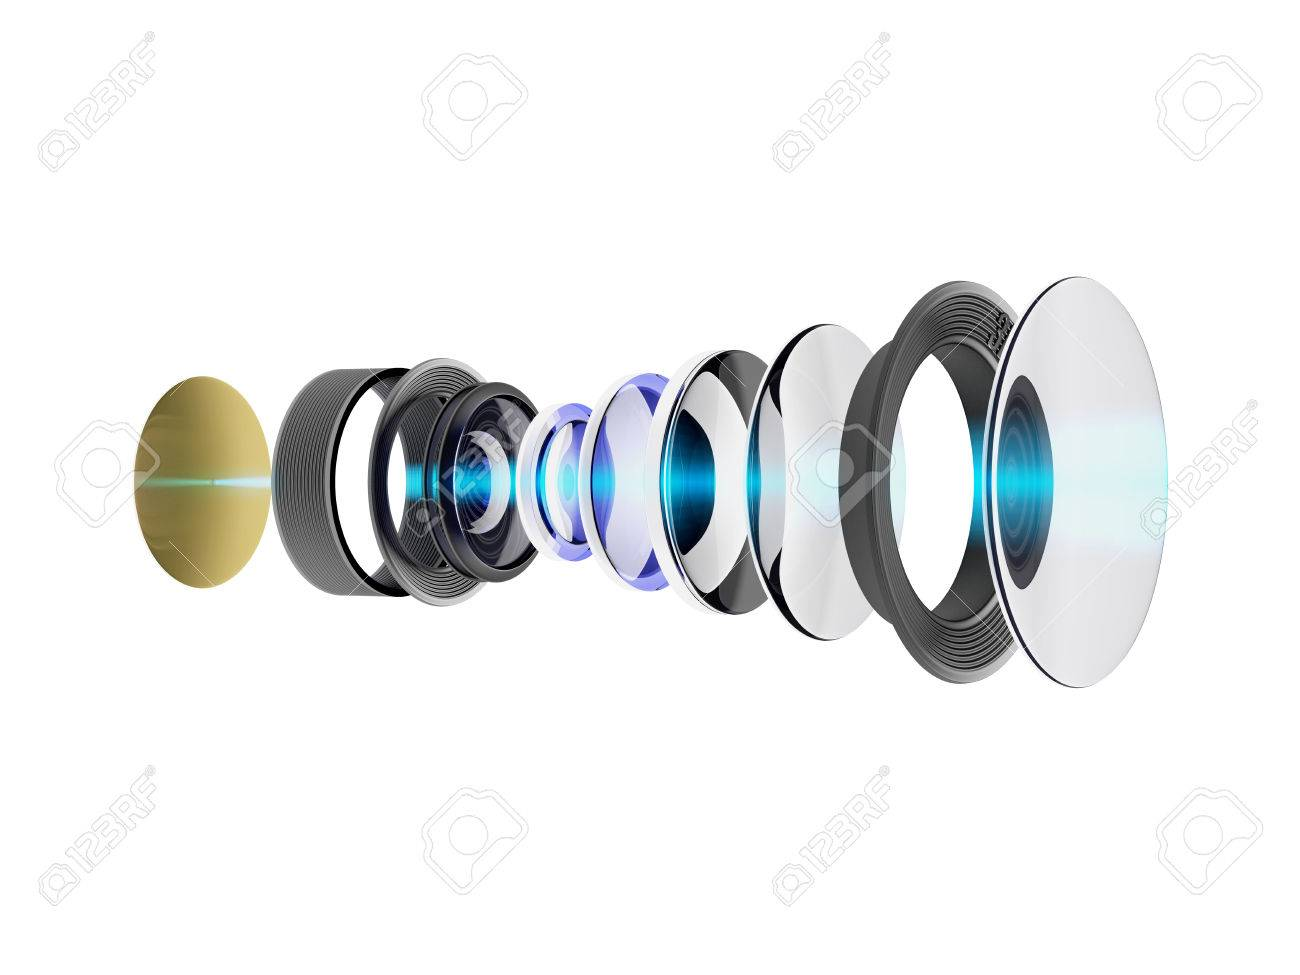 Technical 3D illustration of modern lens for smartphone or camera. An internal circuit of the device isolated on white background. - 69682273